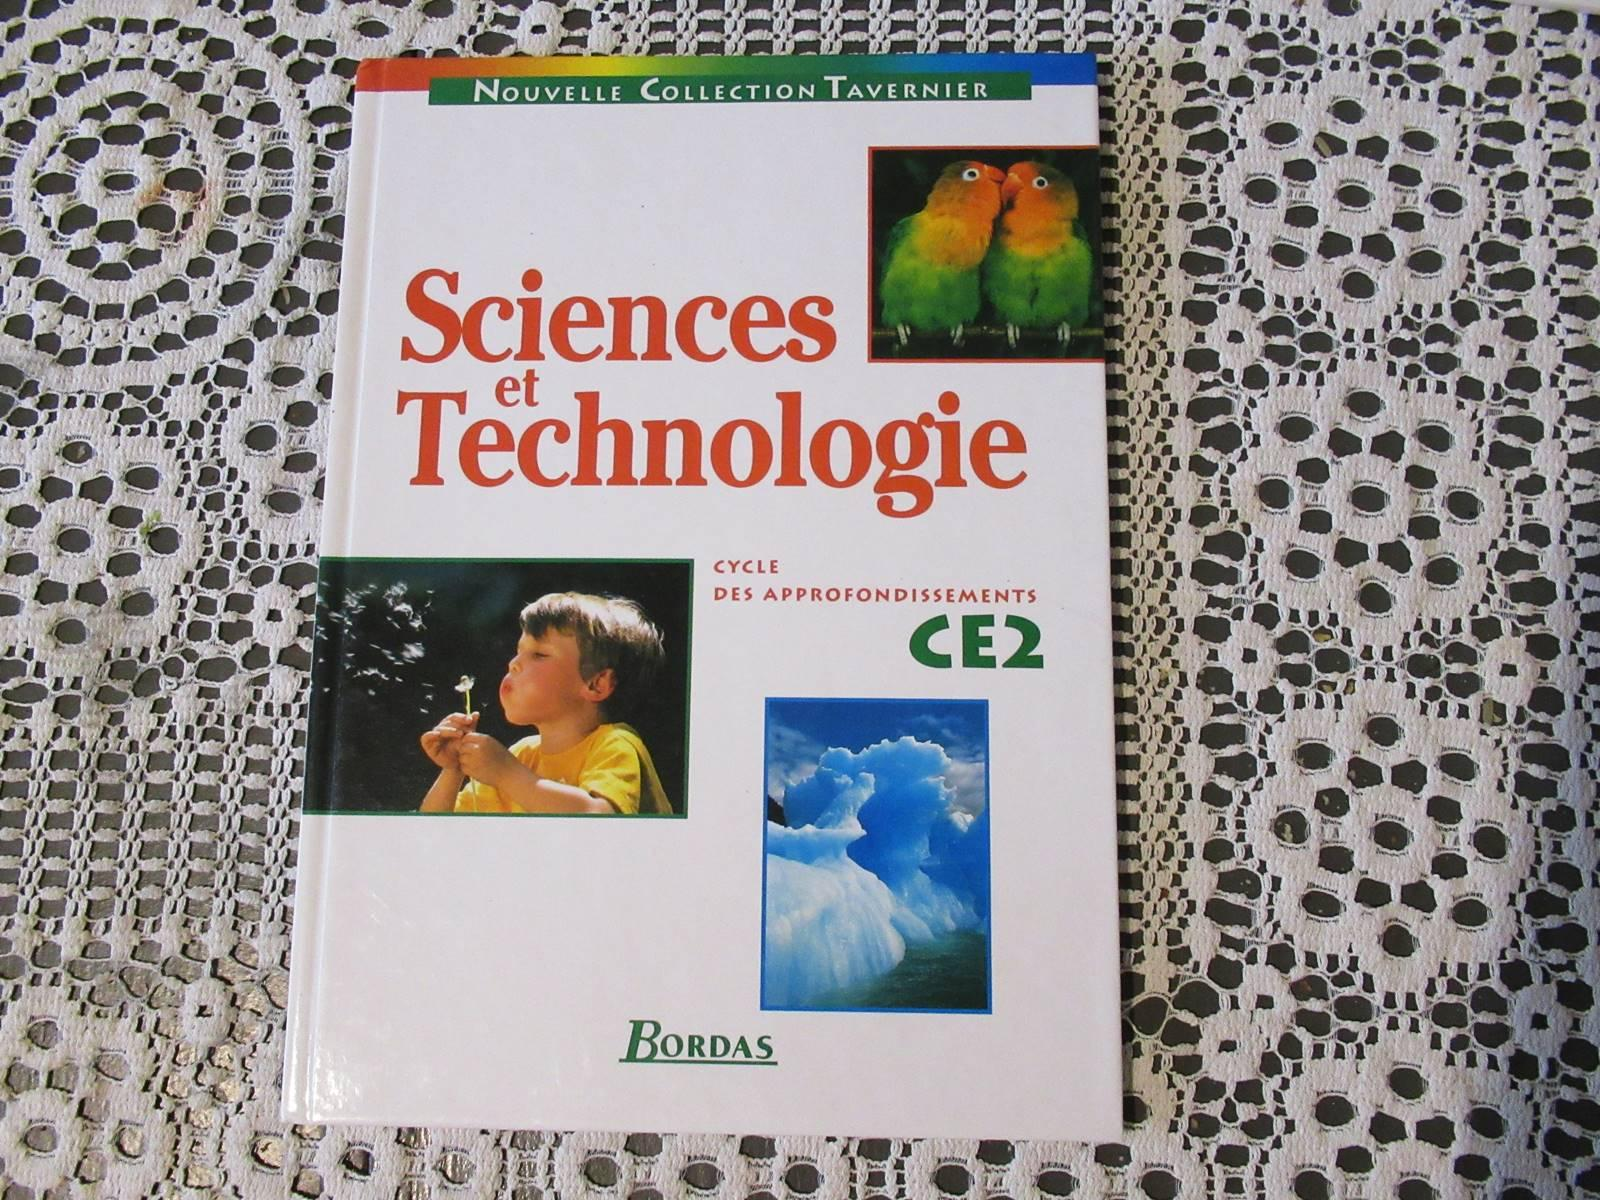 Manuel ce2 science technologie chimie bordas ief 7